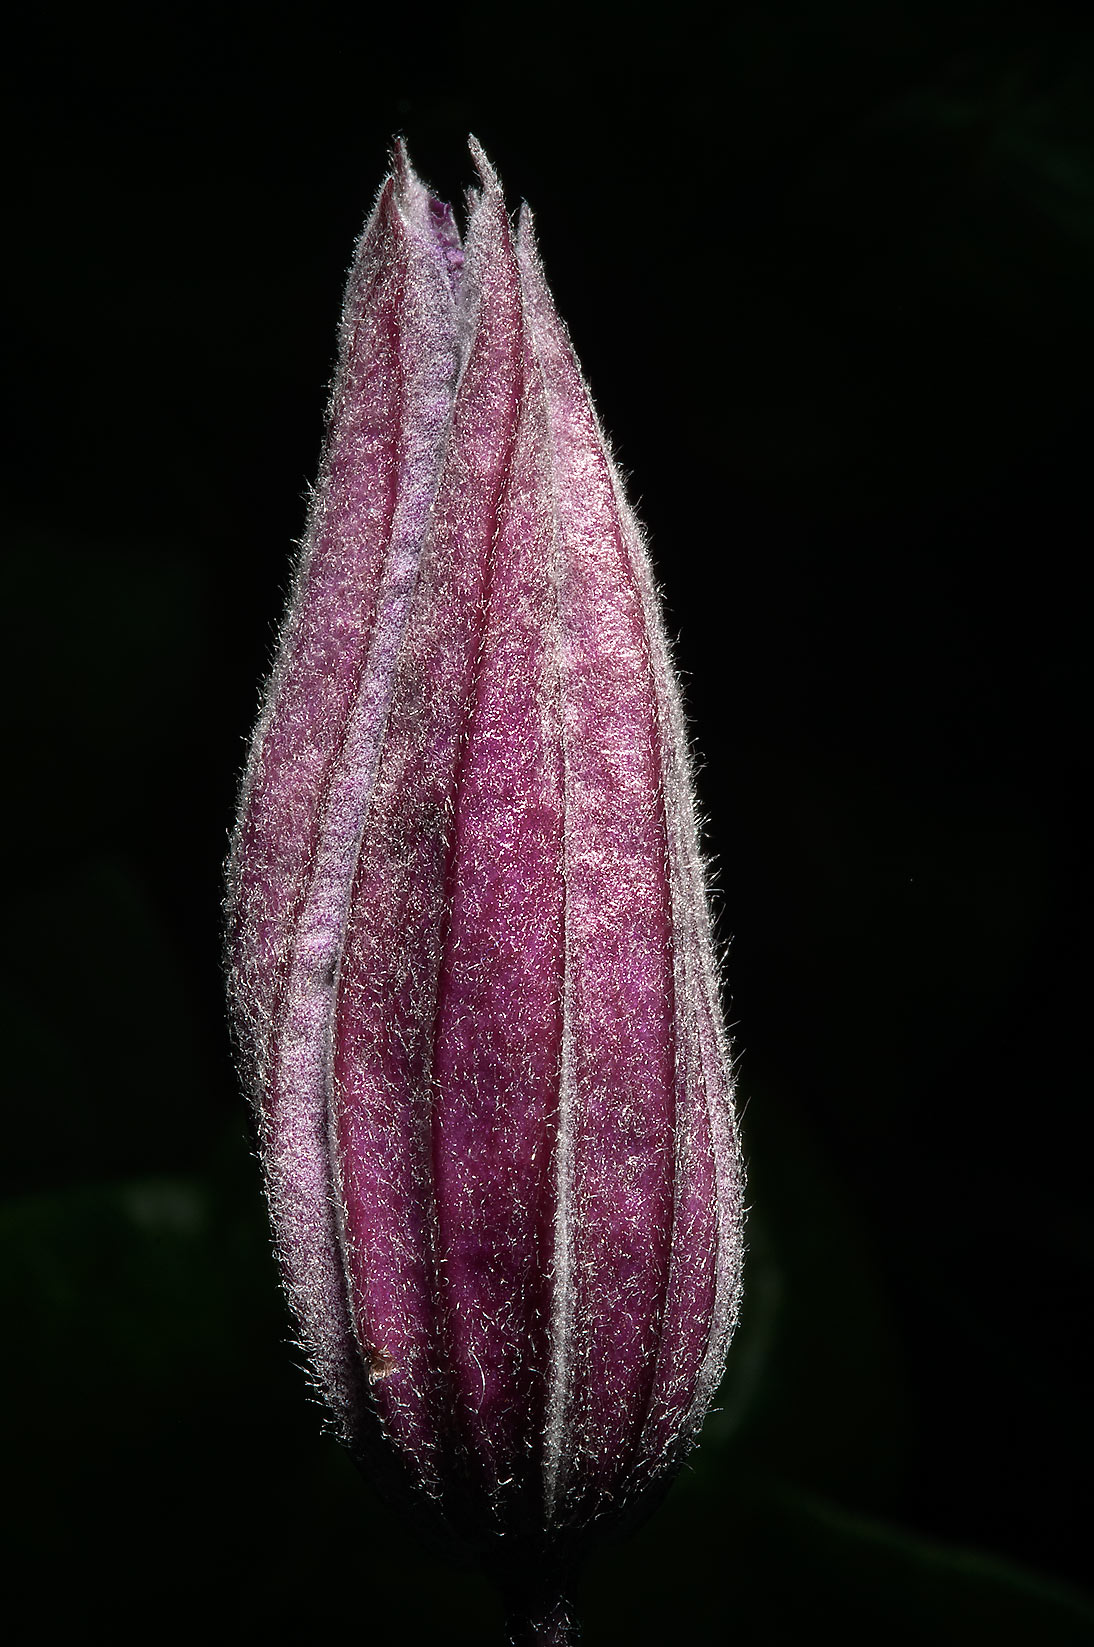 Bud of clematis in Botanic Gardens of Komarov Botanical Institute. St.Petersburg, Russia